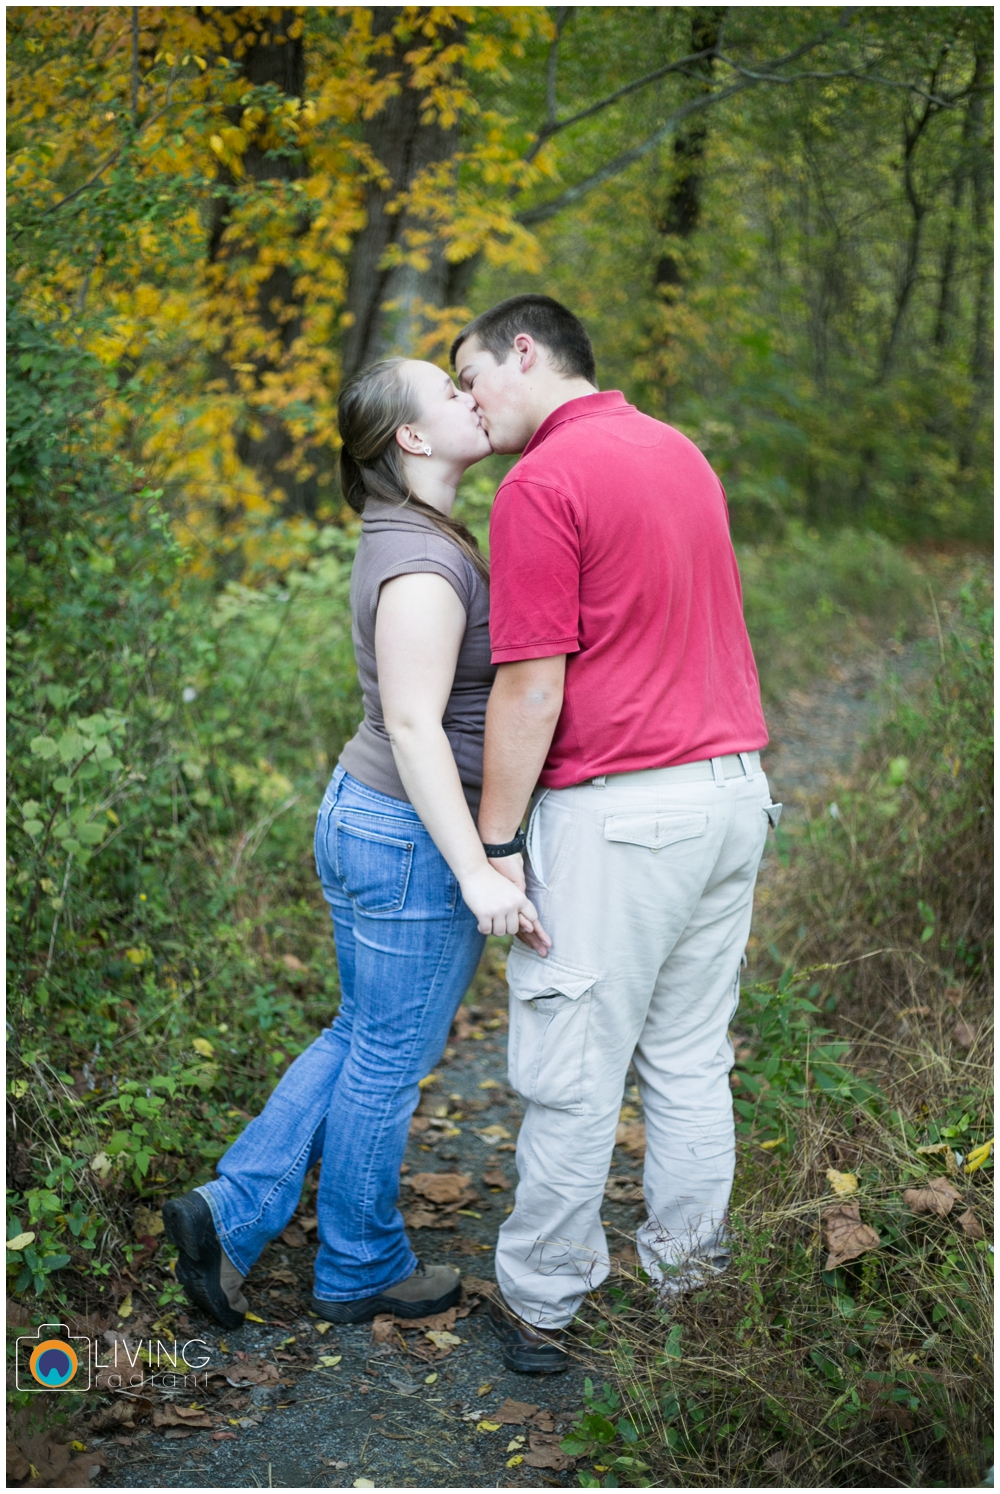 holley-ray-engaged-outdoor-engagement-session-woods-water-state-park-living-radiant-photography_0005.jpg